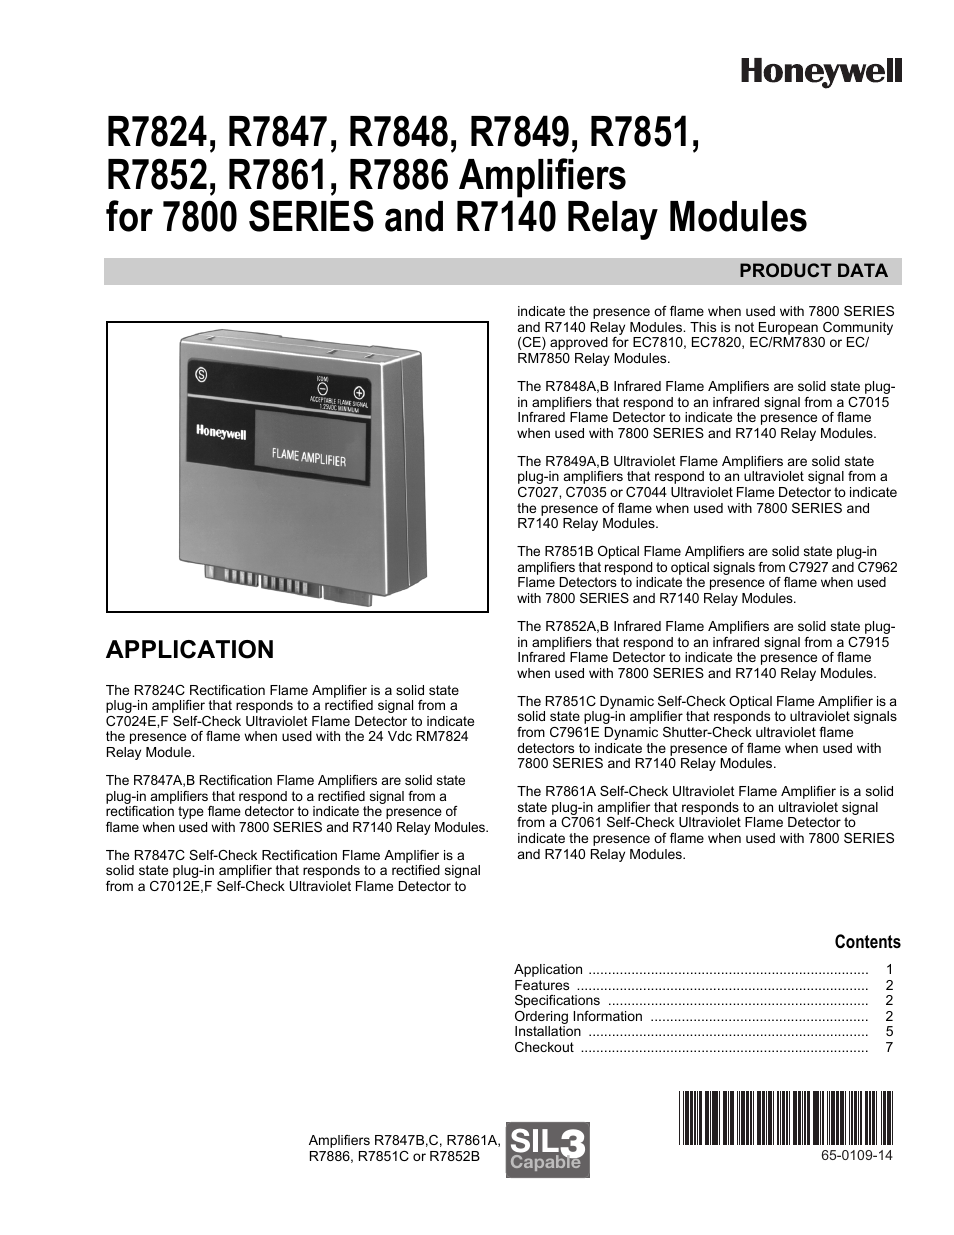 Honeywell R7824 User Manual   8 pages